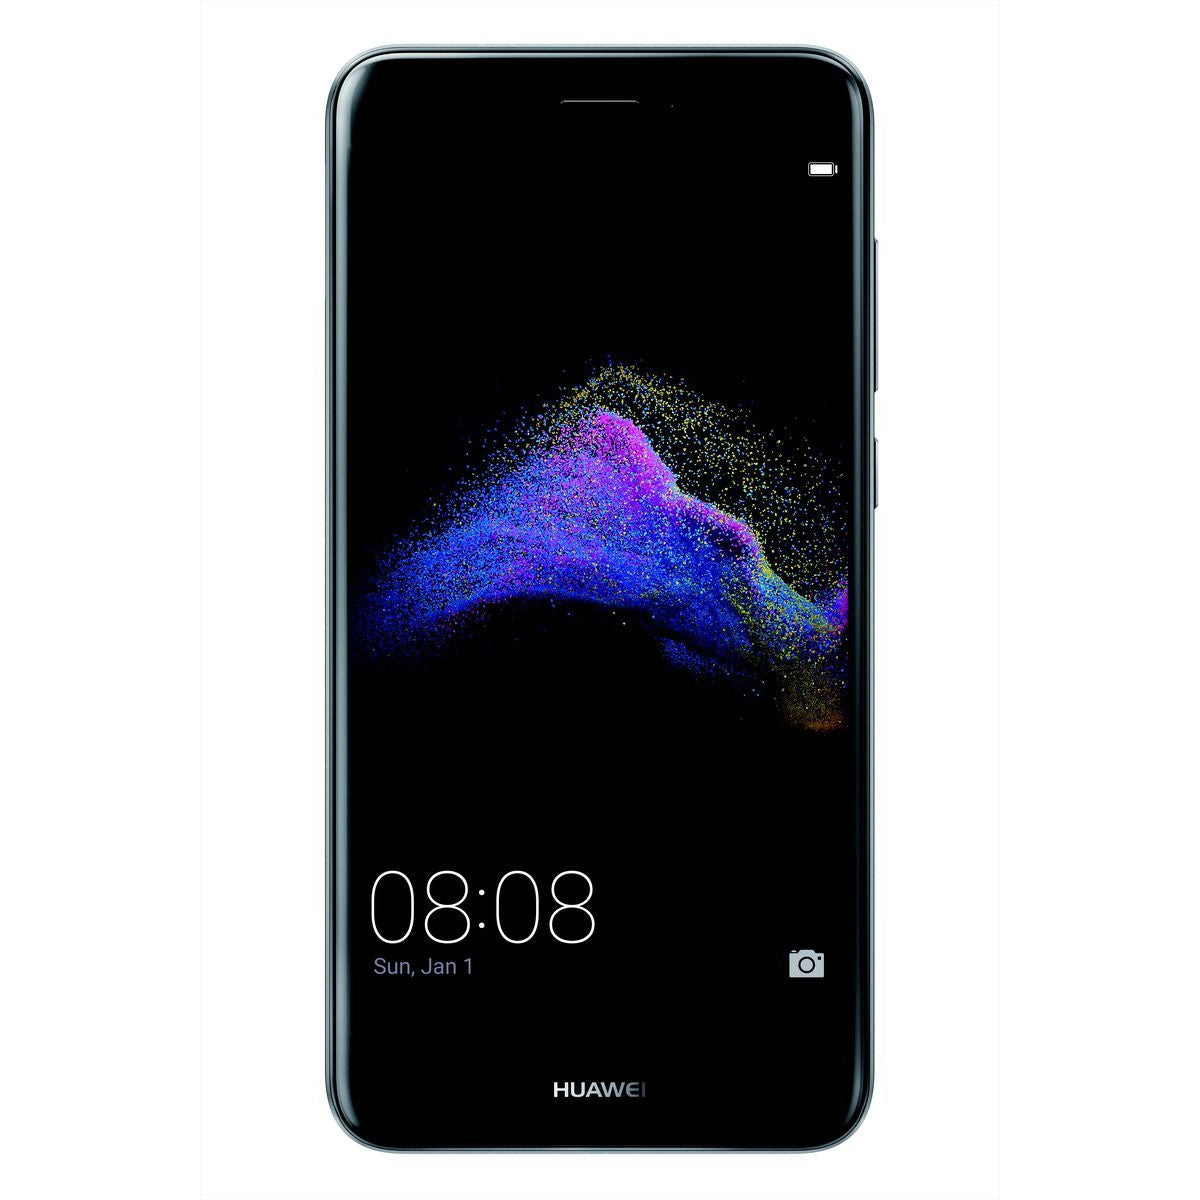 huawei p8 lite 2017 black single sim local stock. Black Bedroom Furniture Sets. Home Design Ideas